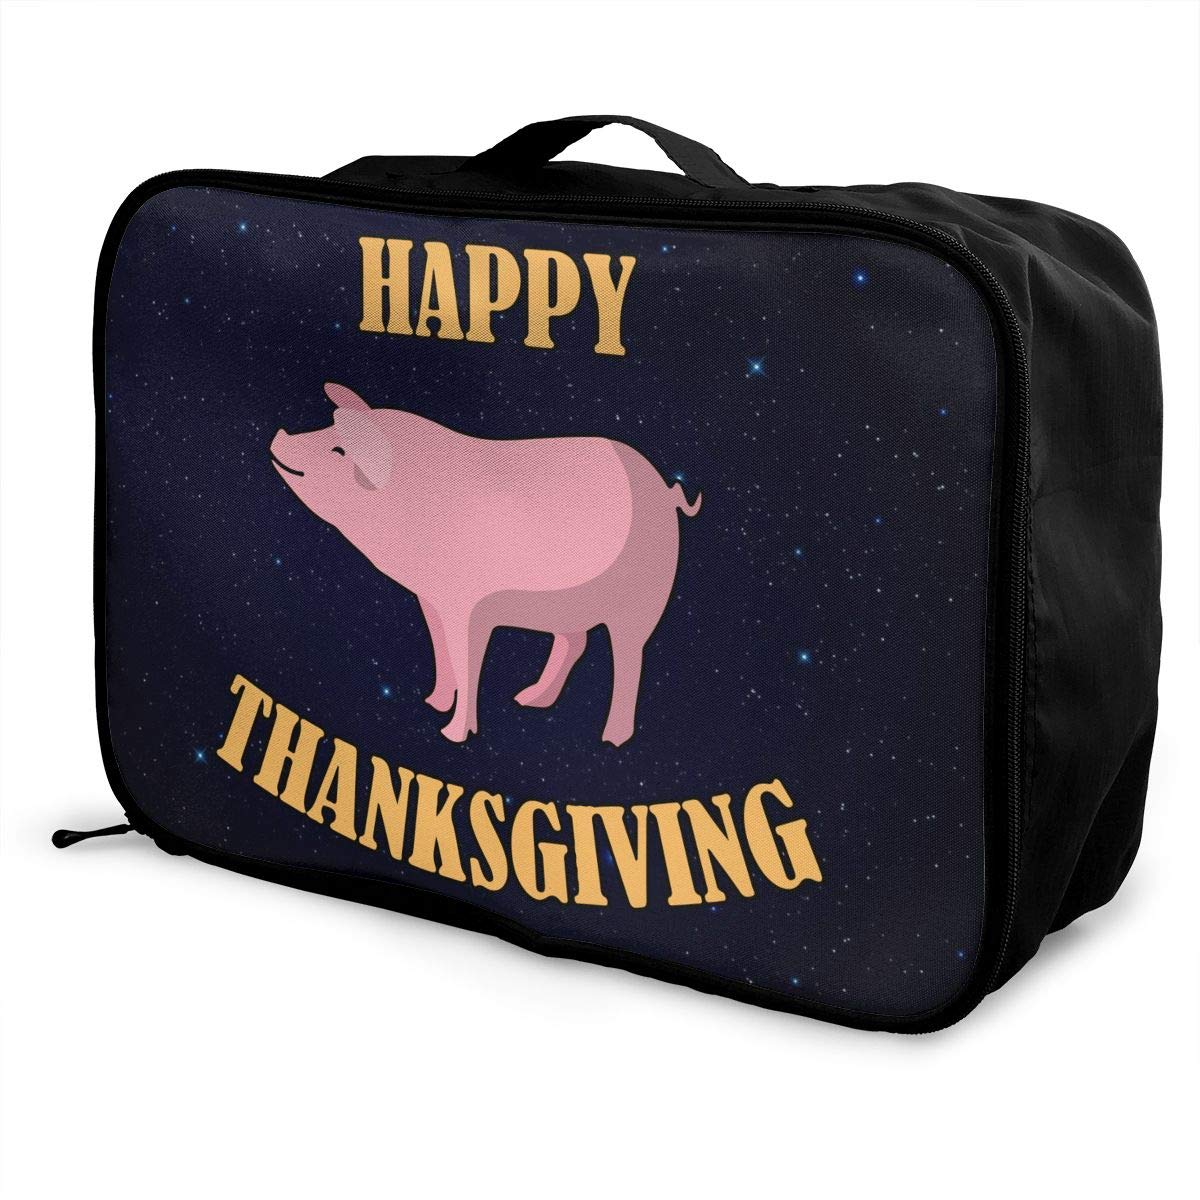 Happy Thanksgiving Pig Luggage Bag Capacity Portable Large Travel Duffel Bag Travel Makeup Bag